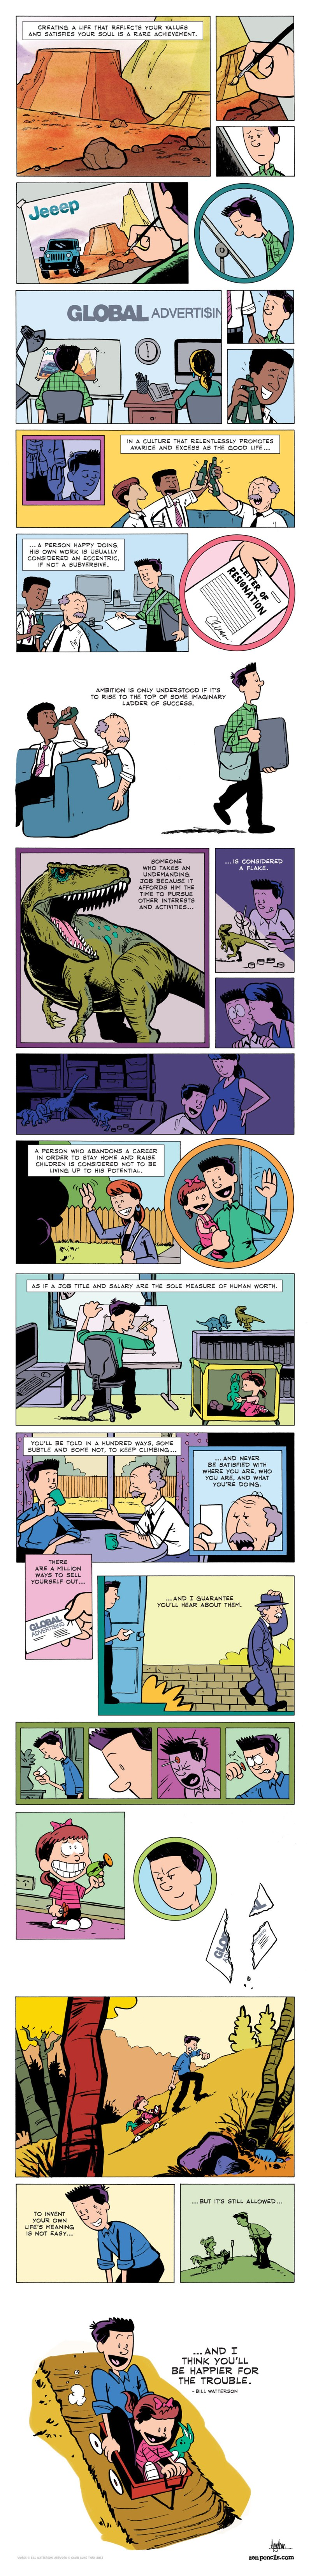 Courtesy of Zen Pencils- follow the link for the original plus commentary by the Artist